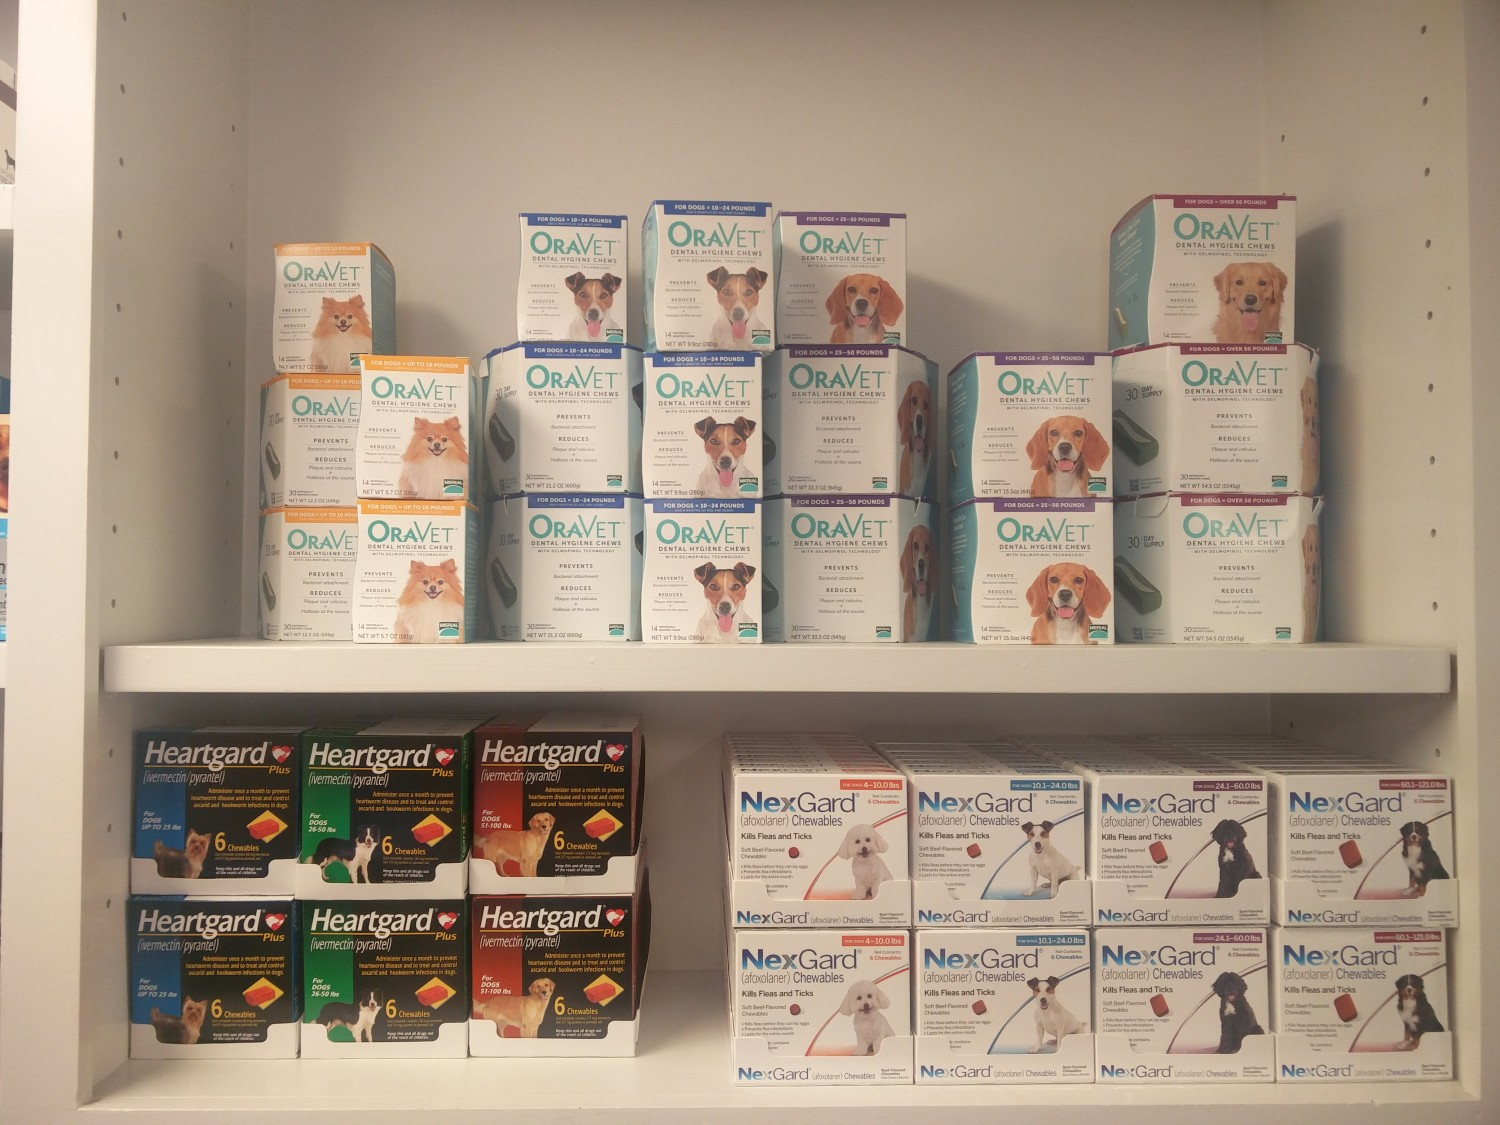 Swift Creek Animal Hospital - Raleigh, NC - We offer Heartgard Plus, NexGard and Oravet Chews